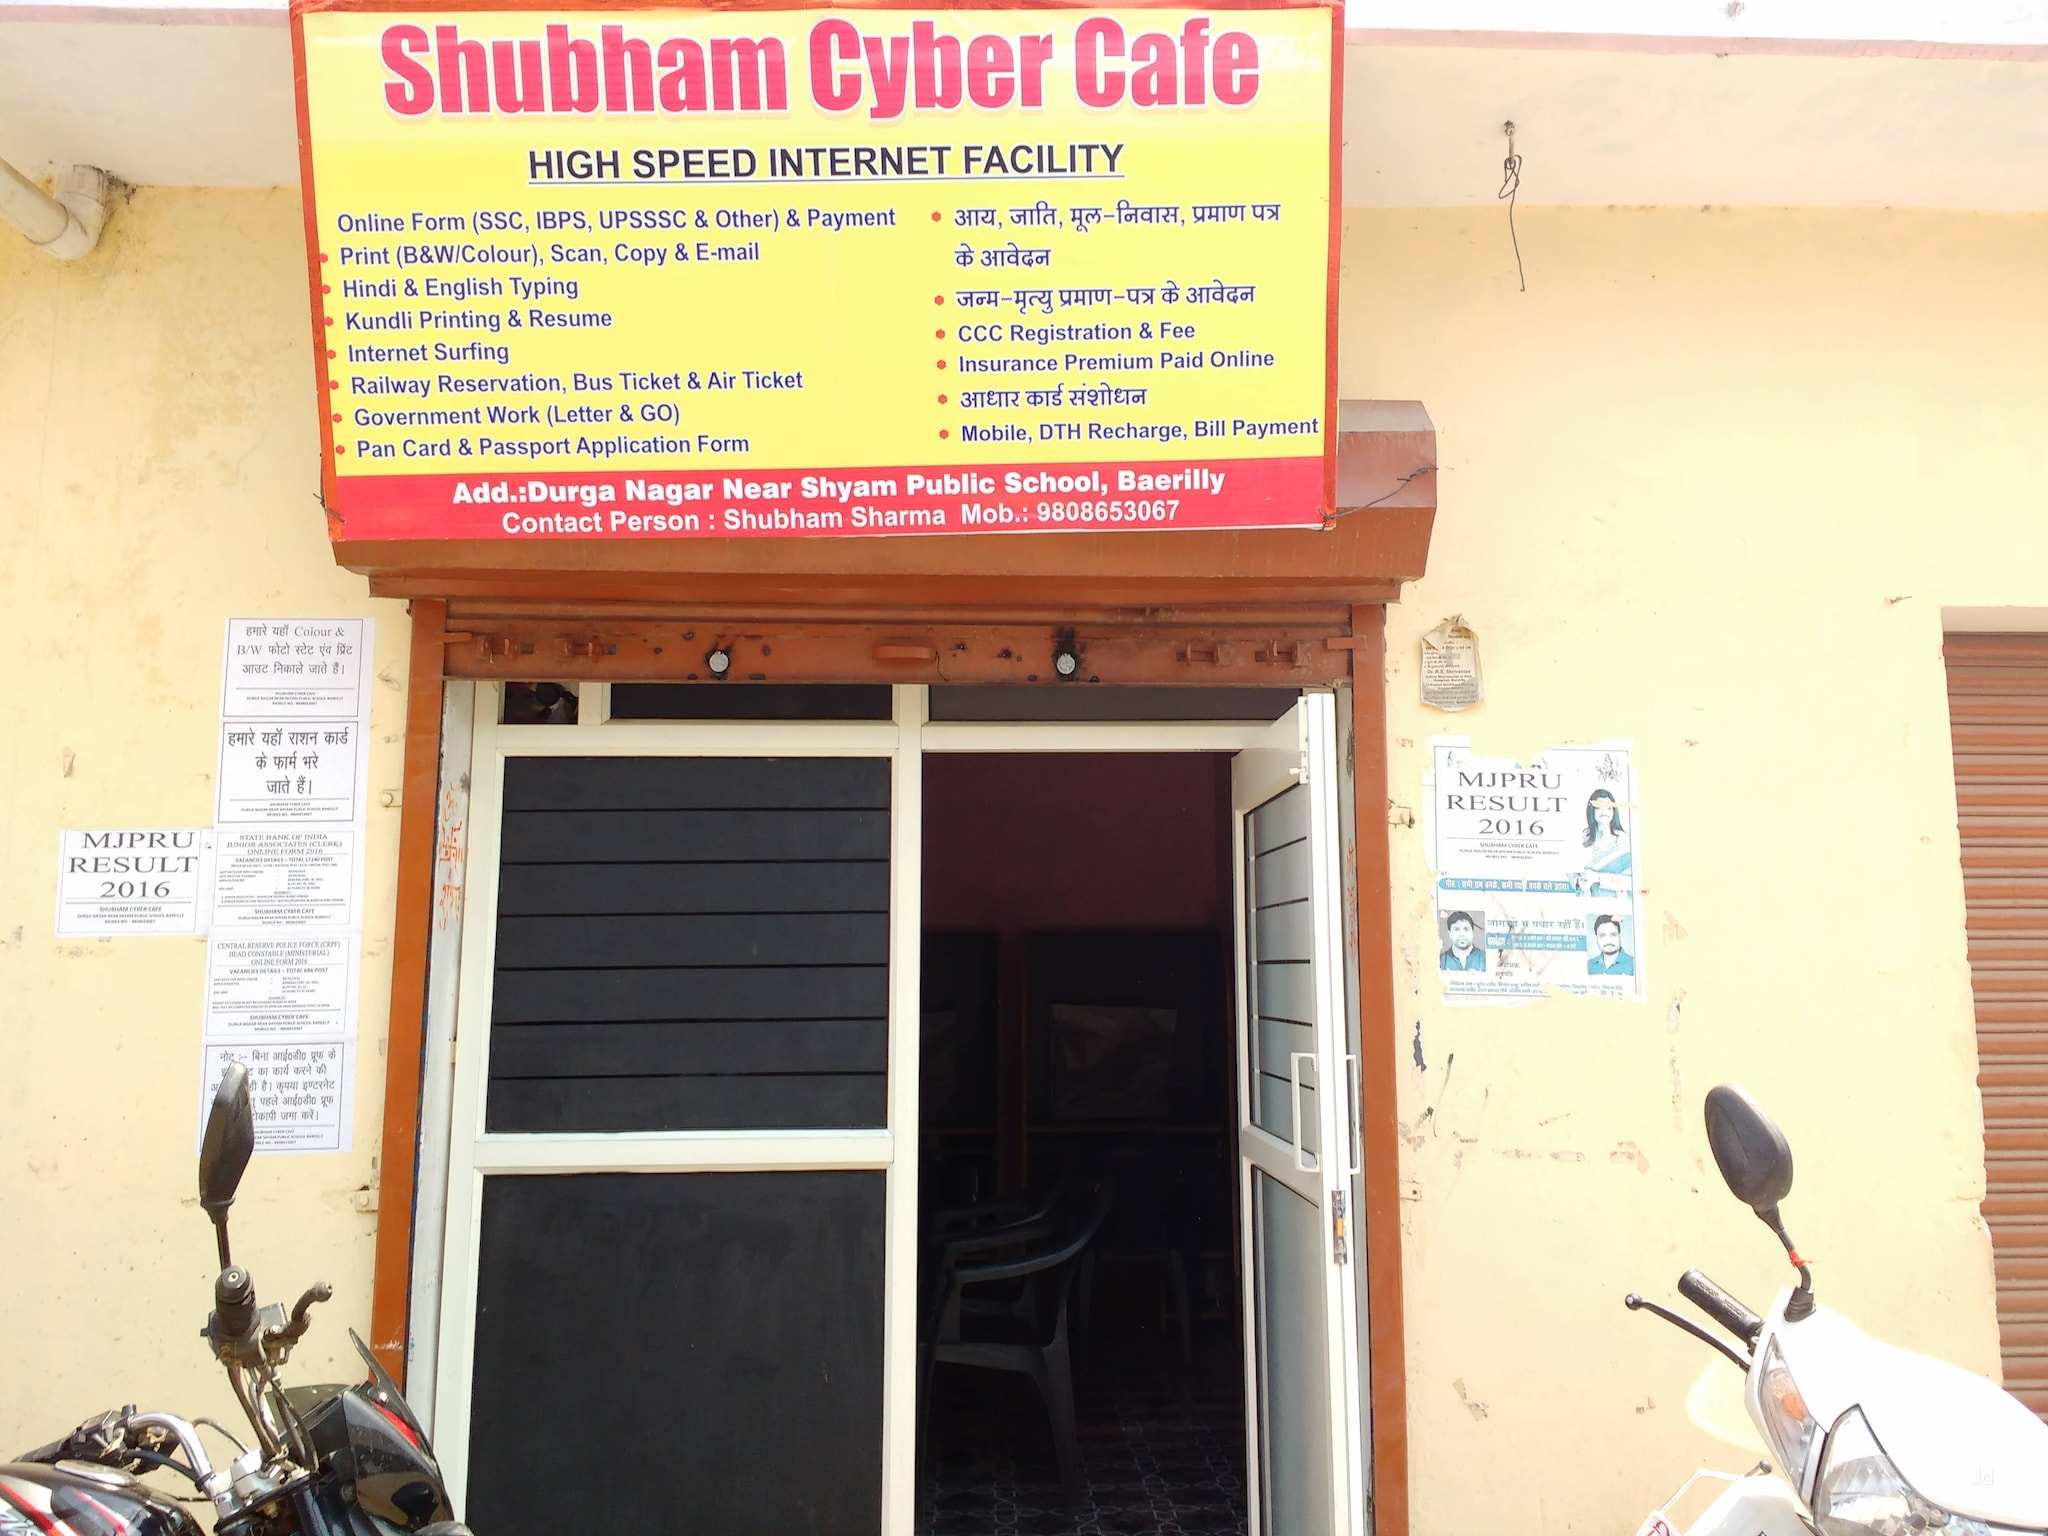 Top 50 Cyber Cafes in Civil Lines, Bareilly - Best Internet